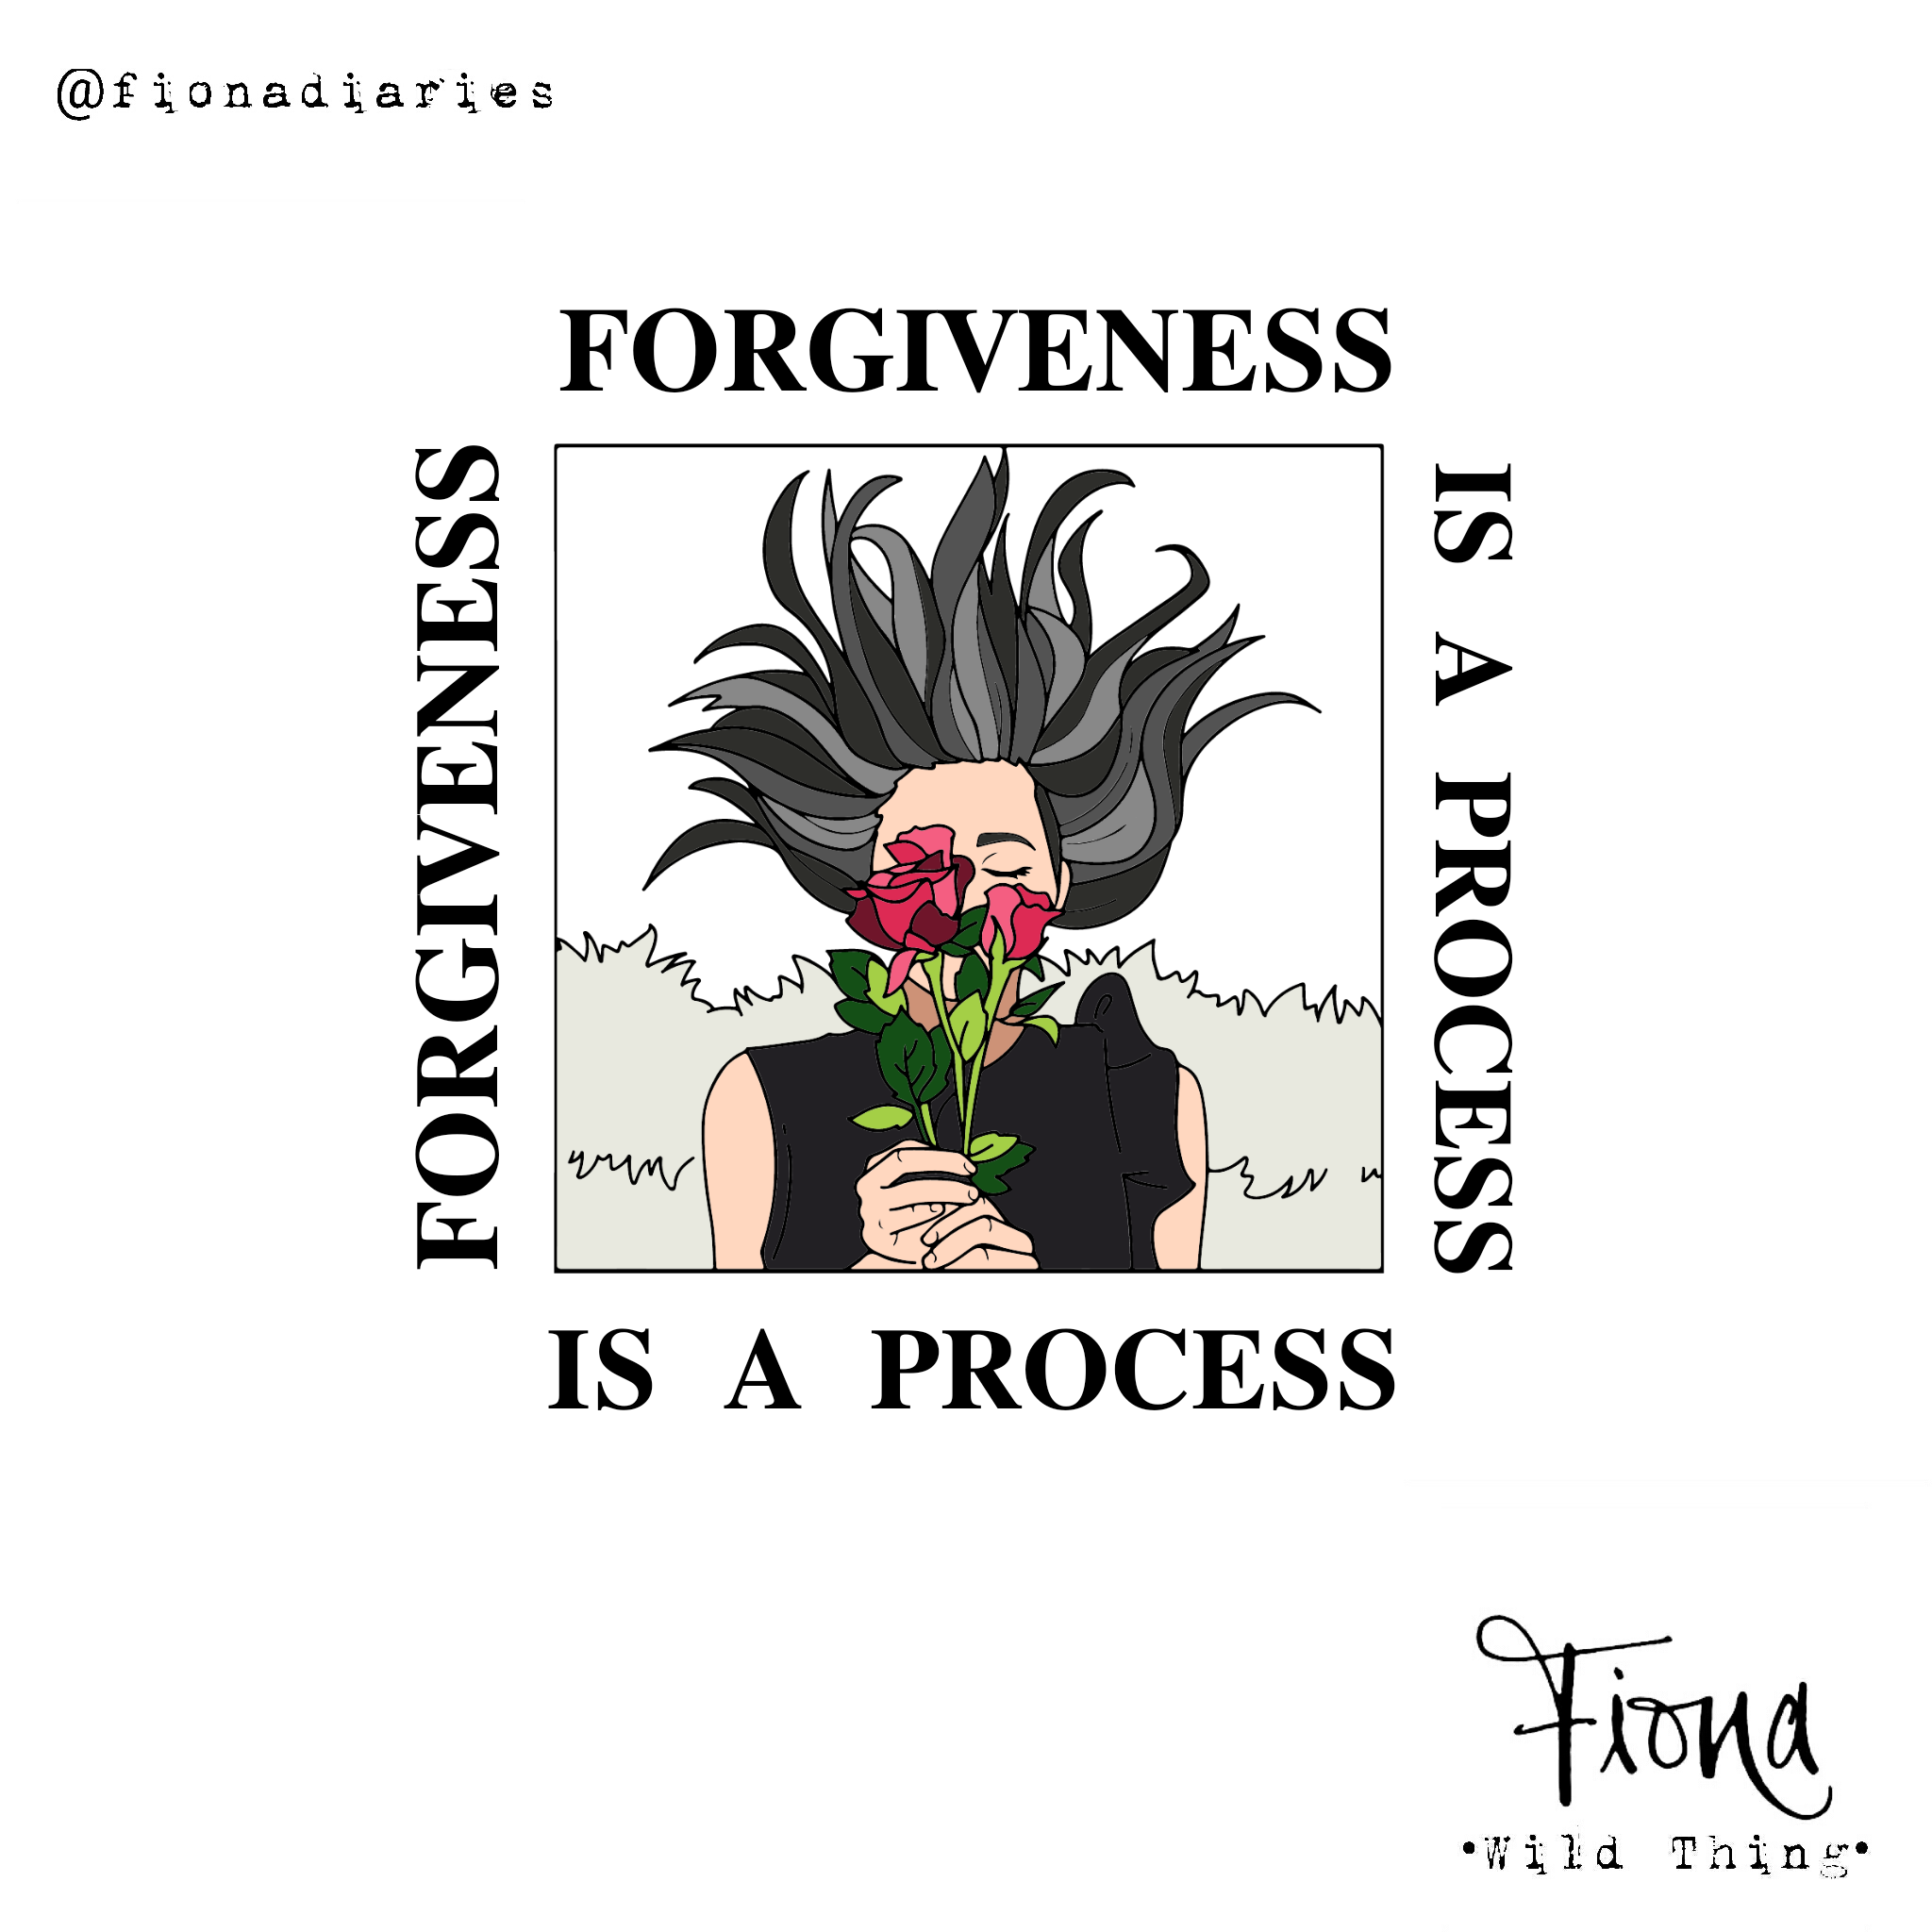 Forgiveness is a process